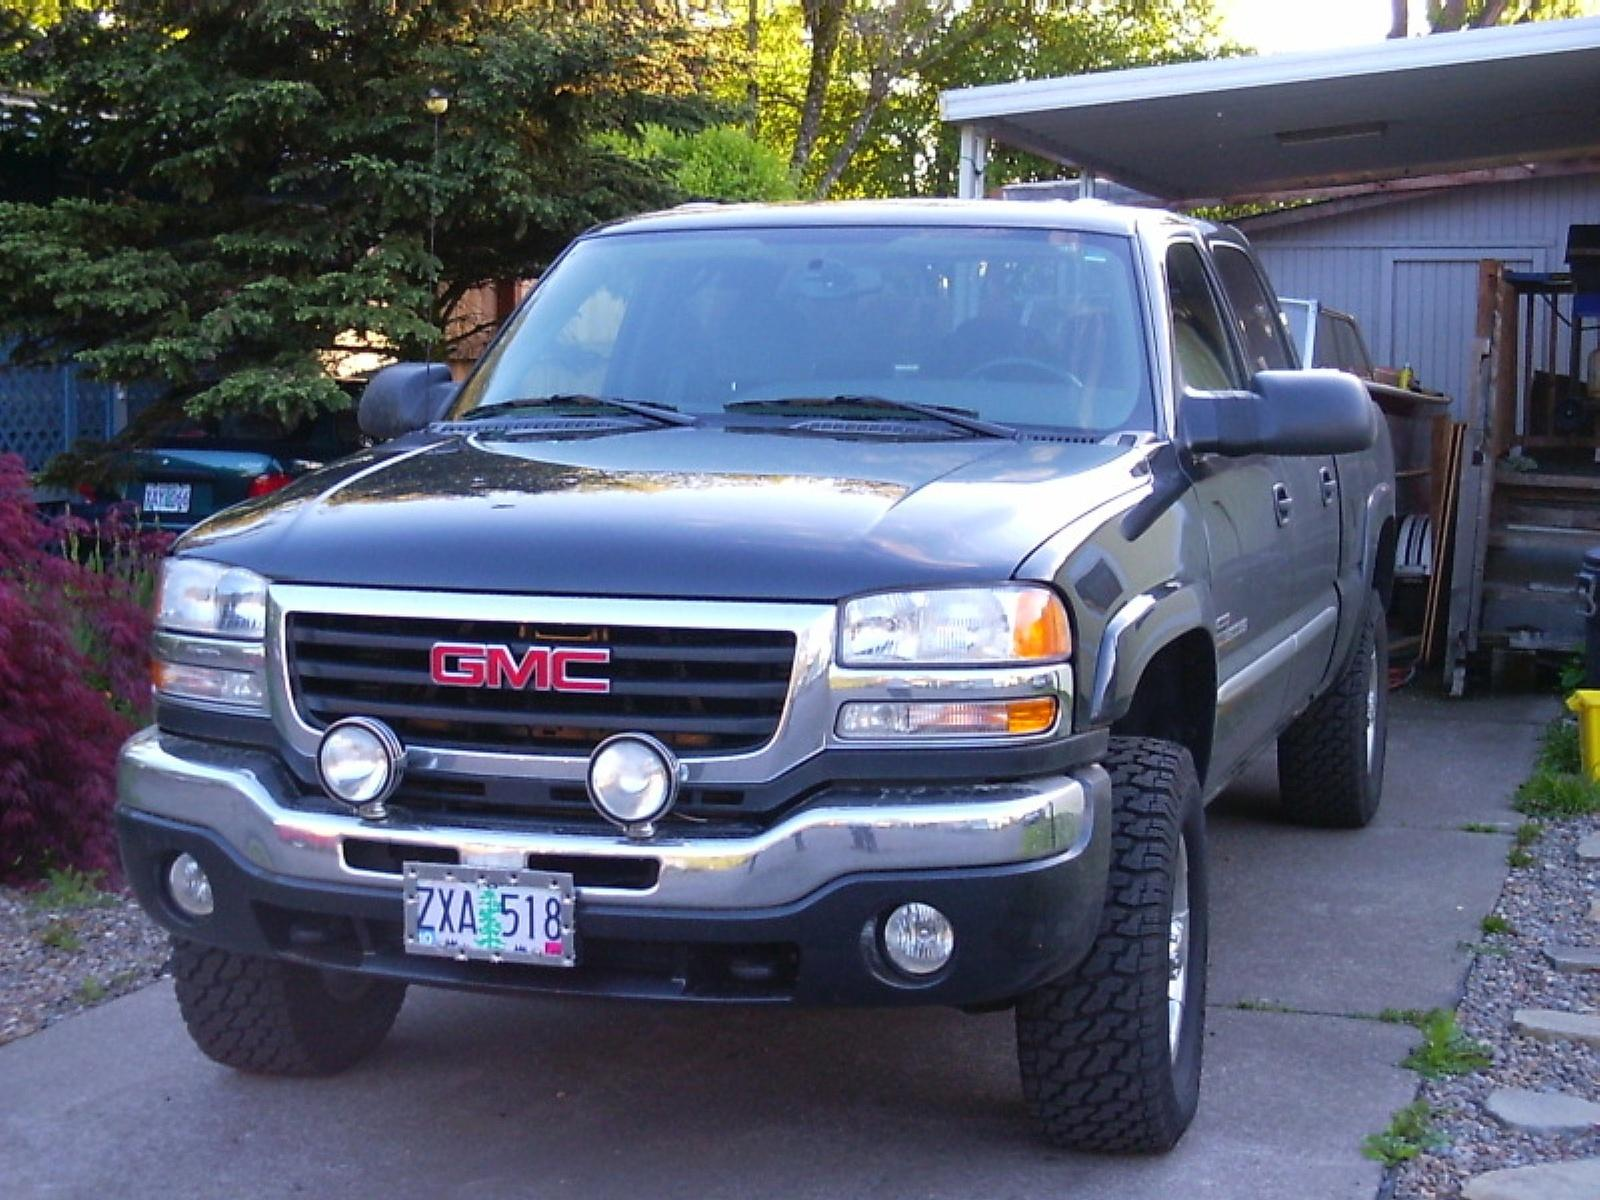 2004 gmc sierra 2500 information and photos zombiedrive rh zombdrive com 2004 gmc sierra manual transmission 2004 gmc sierra manual